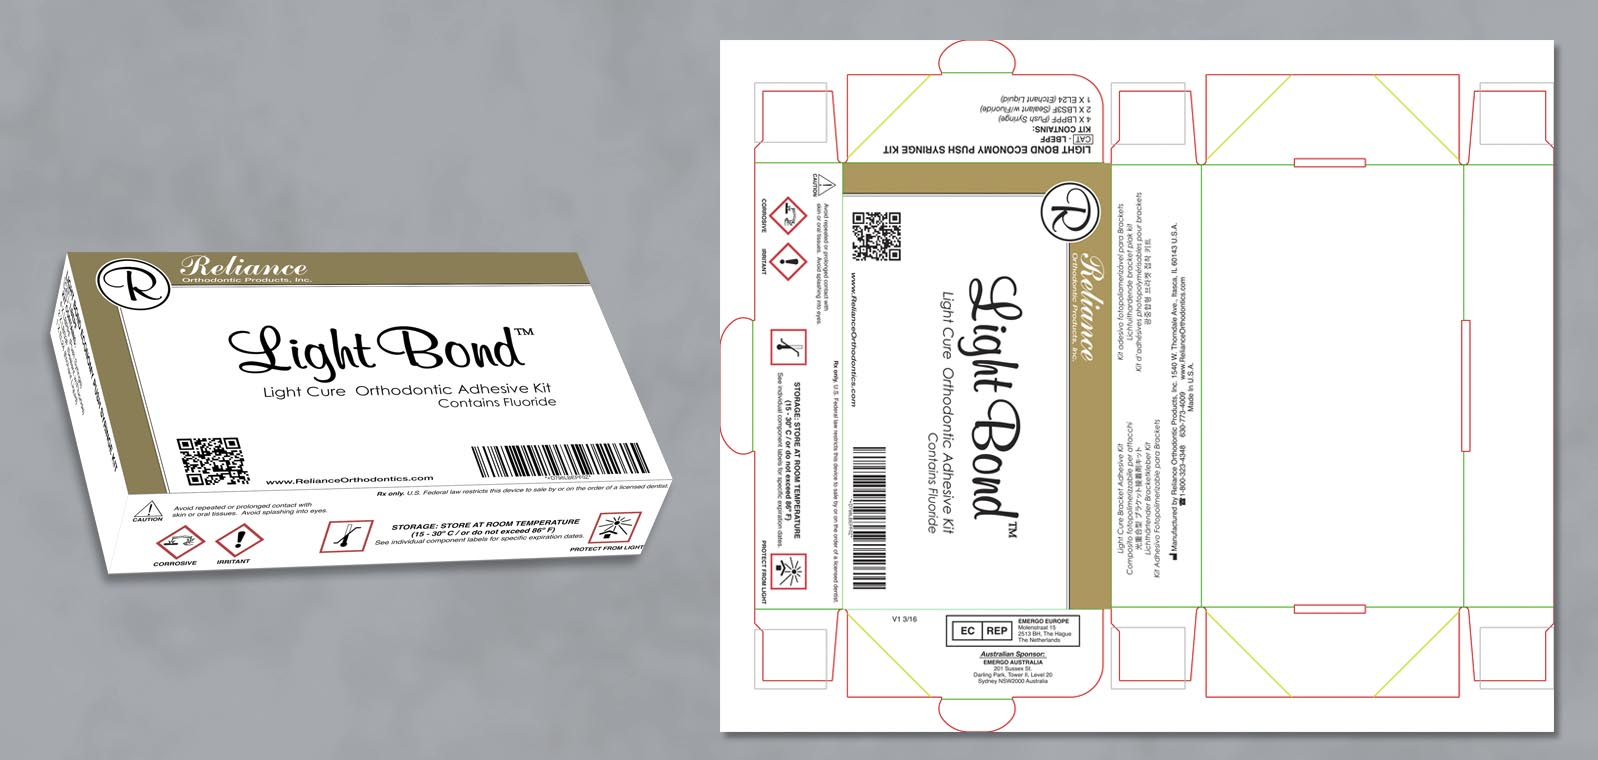 Packaging Graphic Design by Roselle Graphic Designer Controlled Color, Inc.